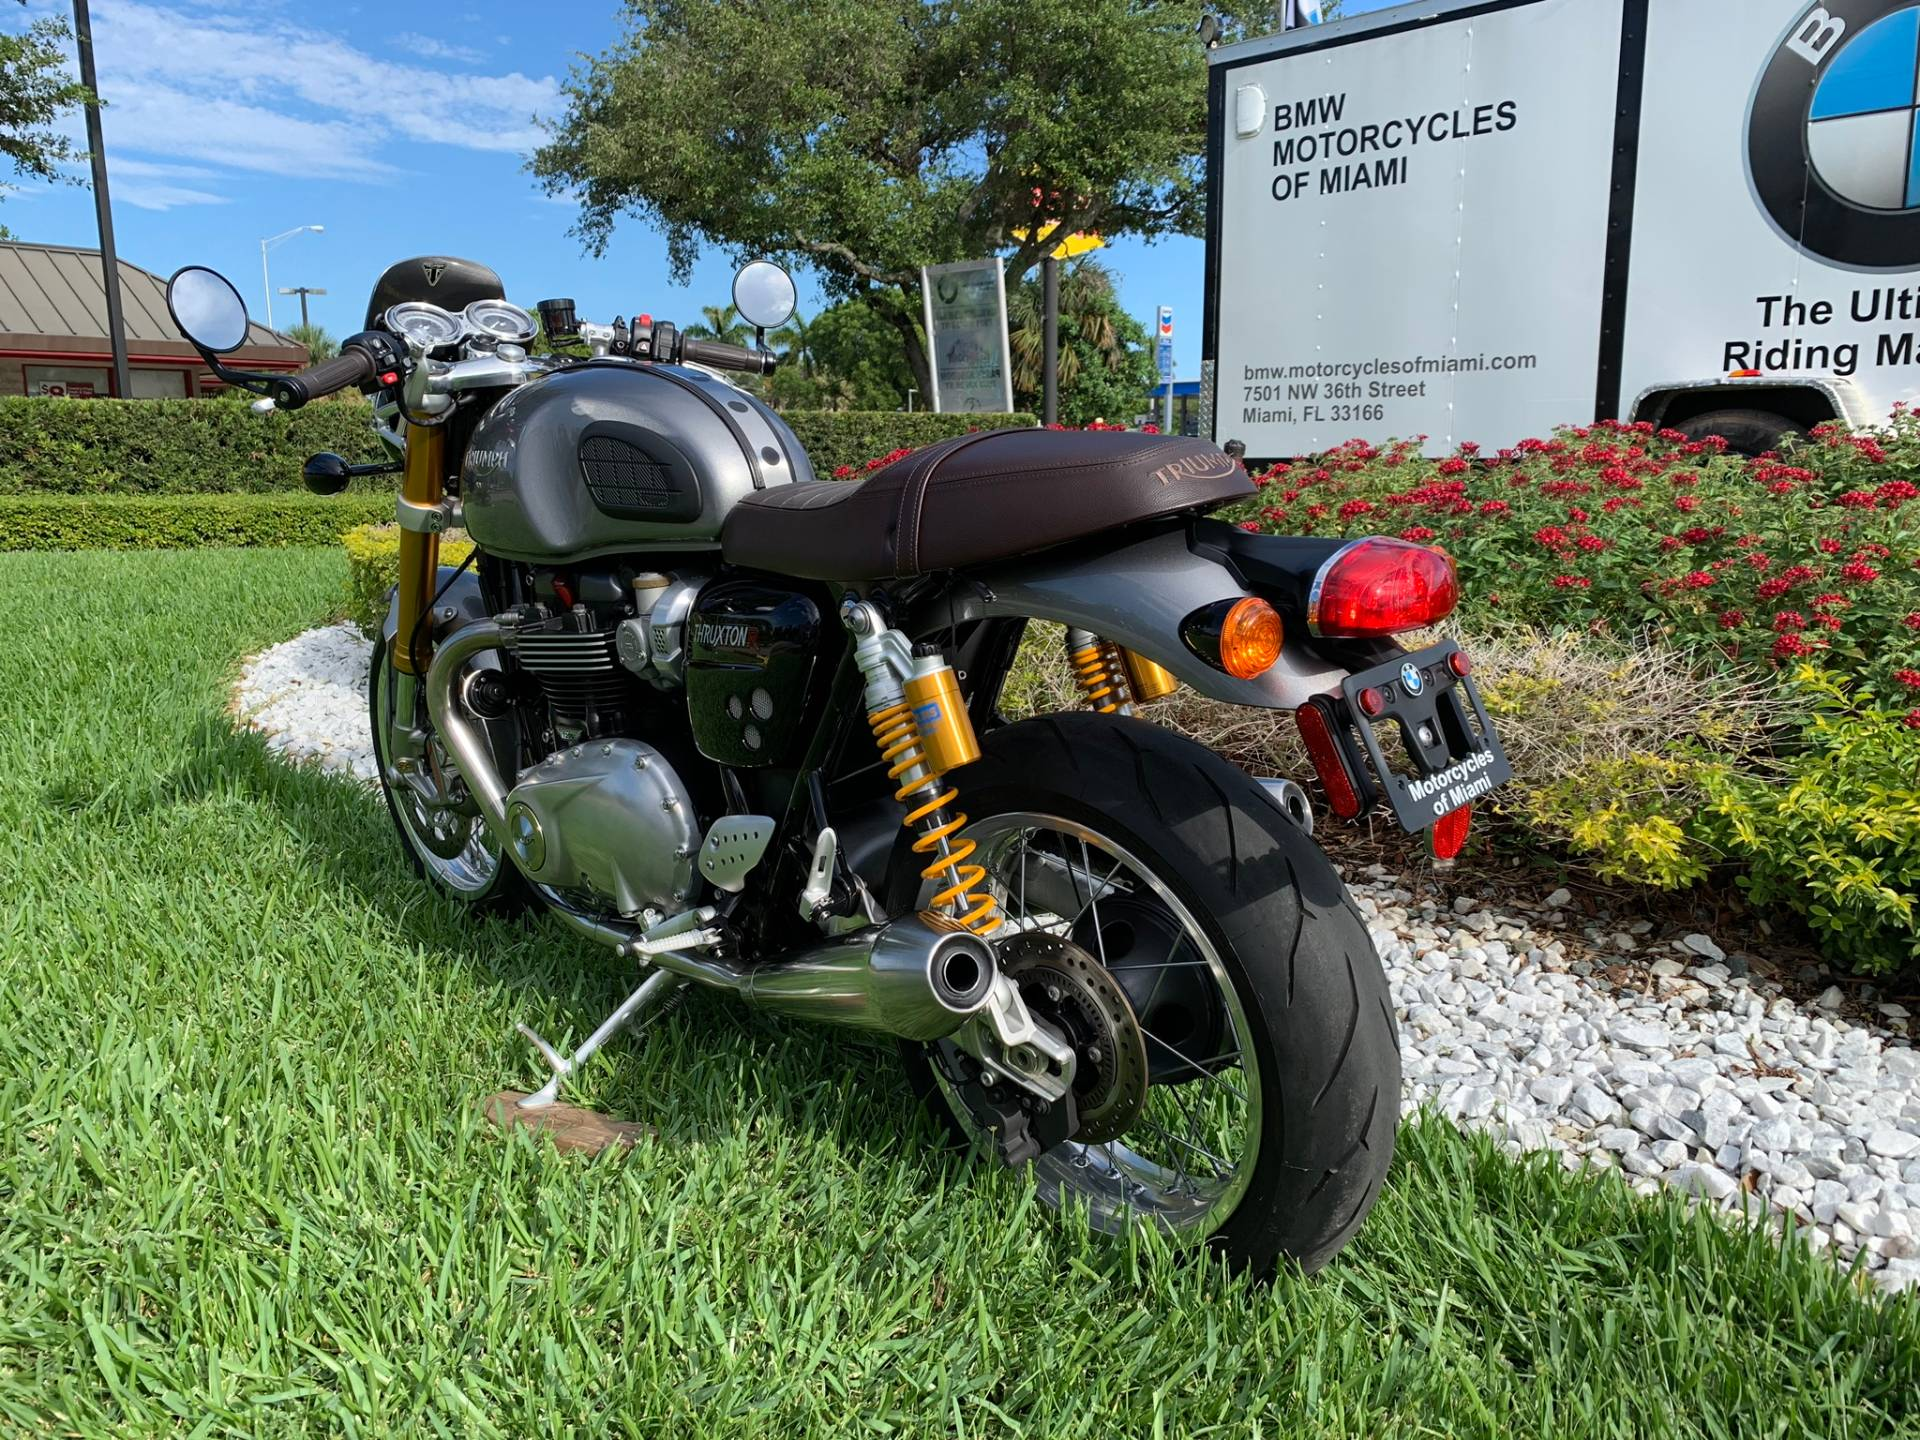 Used 2016 Triumph Thruxton 1200 R for sale,  2016 Triumph Thruxton 1200R for sale,  Triumph Thruxton1200R,  Used ThruxtonR, Cafe. Cruiser, BMW Motorcycles of Miami, Motorcycles of Miami, Motorcycles Miami, New Motorcycles, Used Motorcycles, pre-owned. #BMWMotorcyclesOfMiami #MotorcyclesOfMiami #Moto - Photo 10